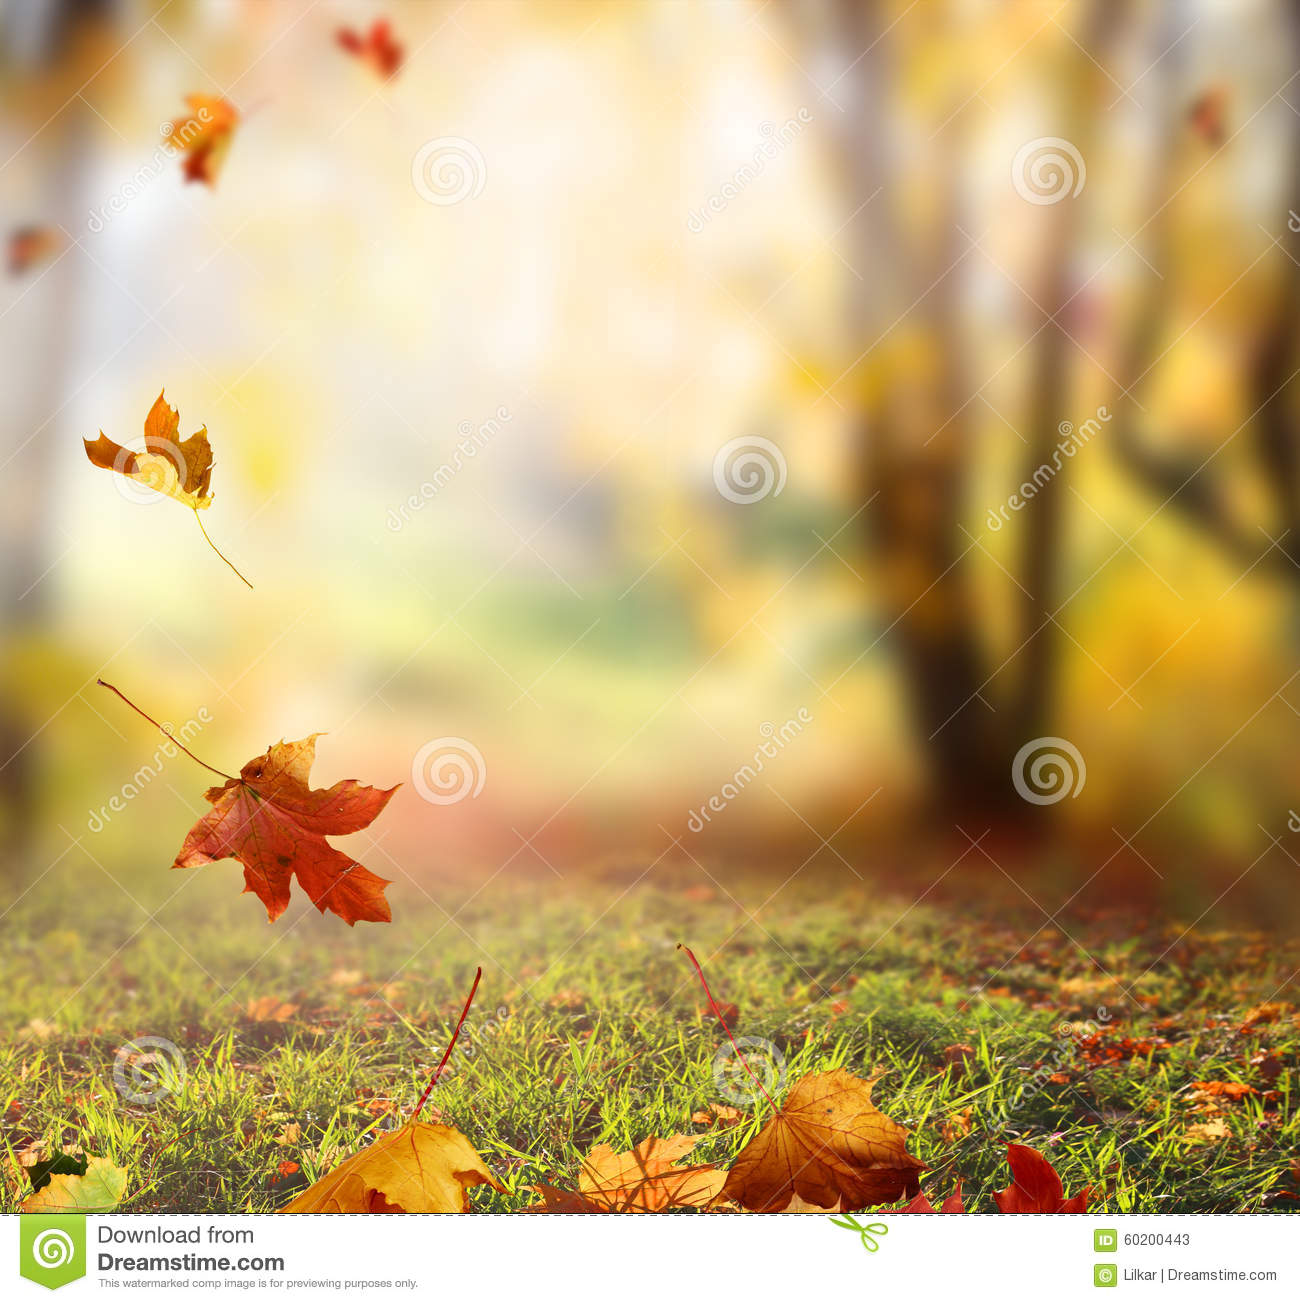 Rustic Fall Desktop Wallpaper Falling Autumn Leaves Background Stock Image Image 60200443